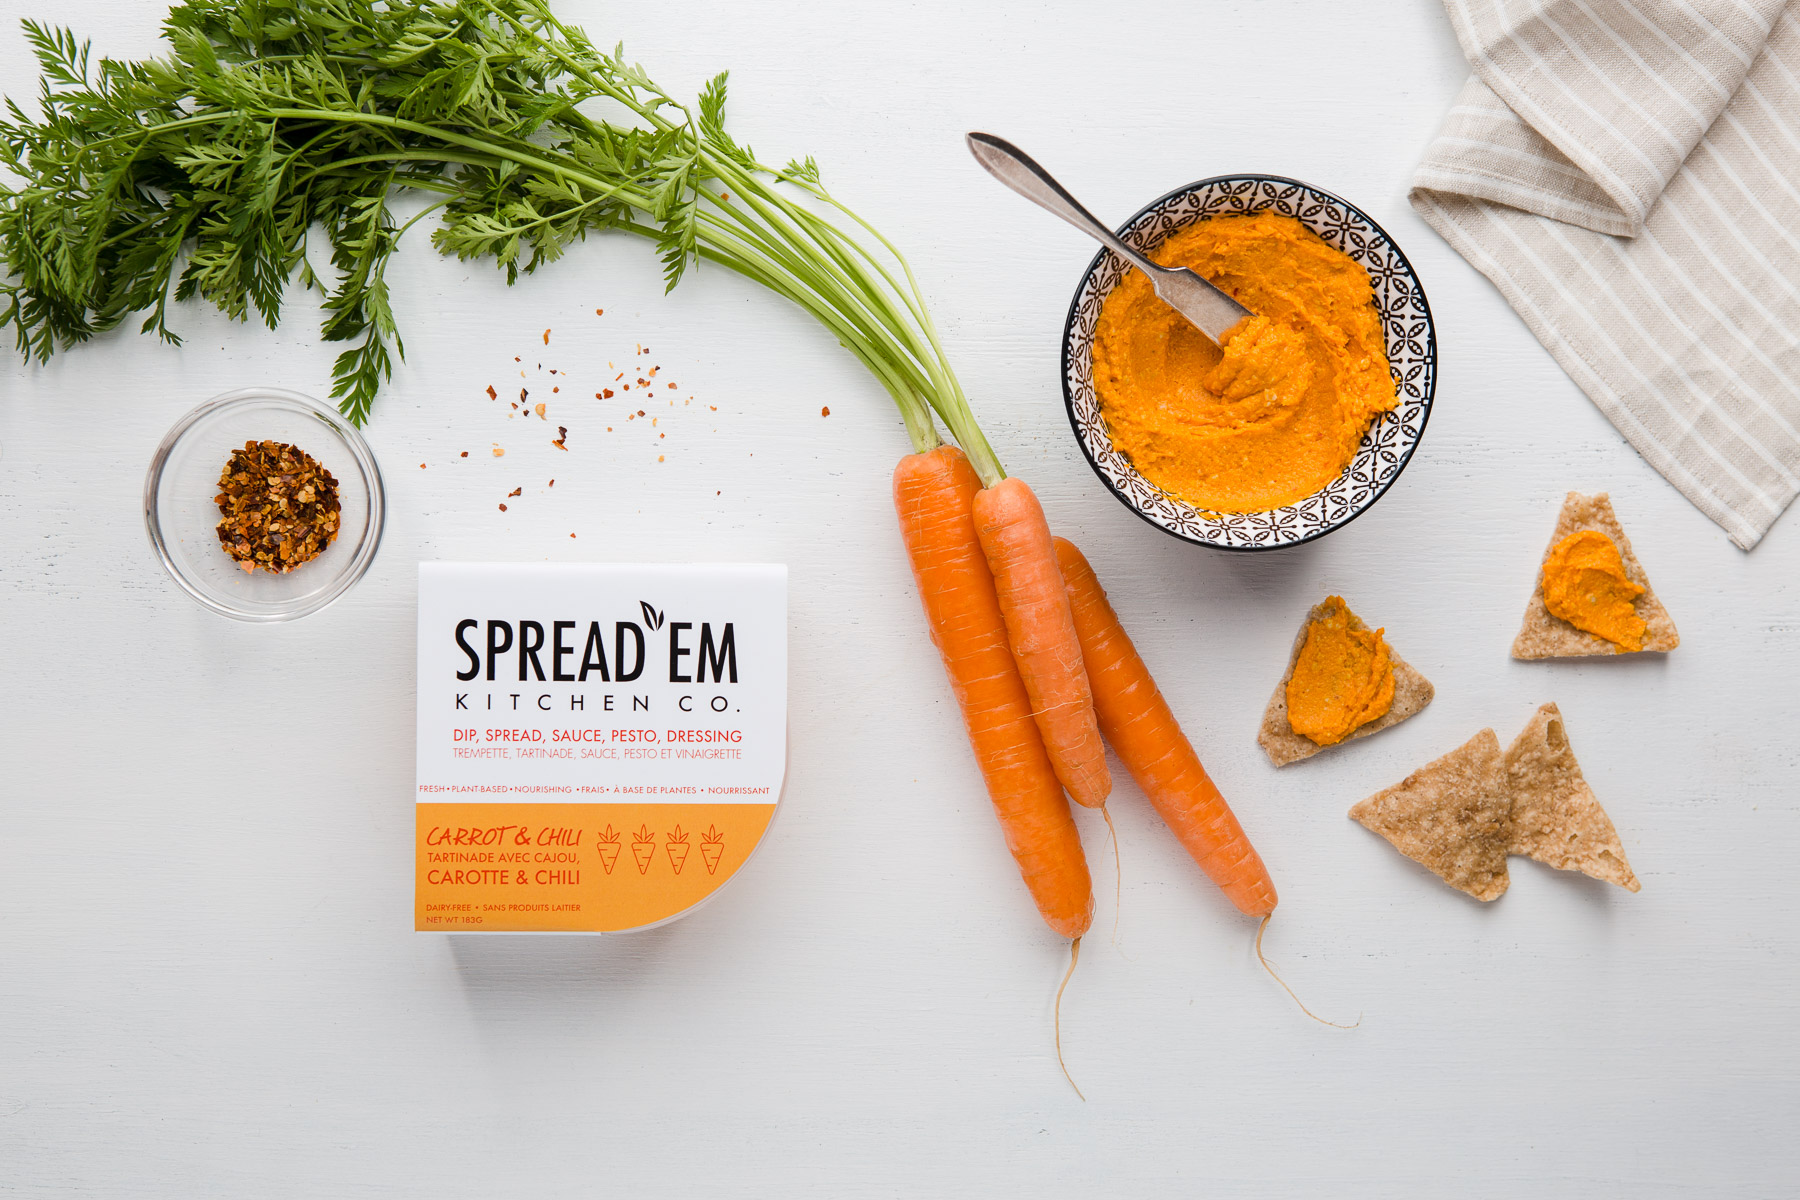 deconstructed product shot for  spread'em kitchen co . website